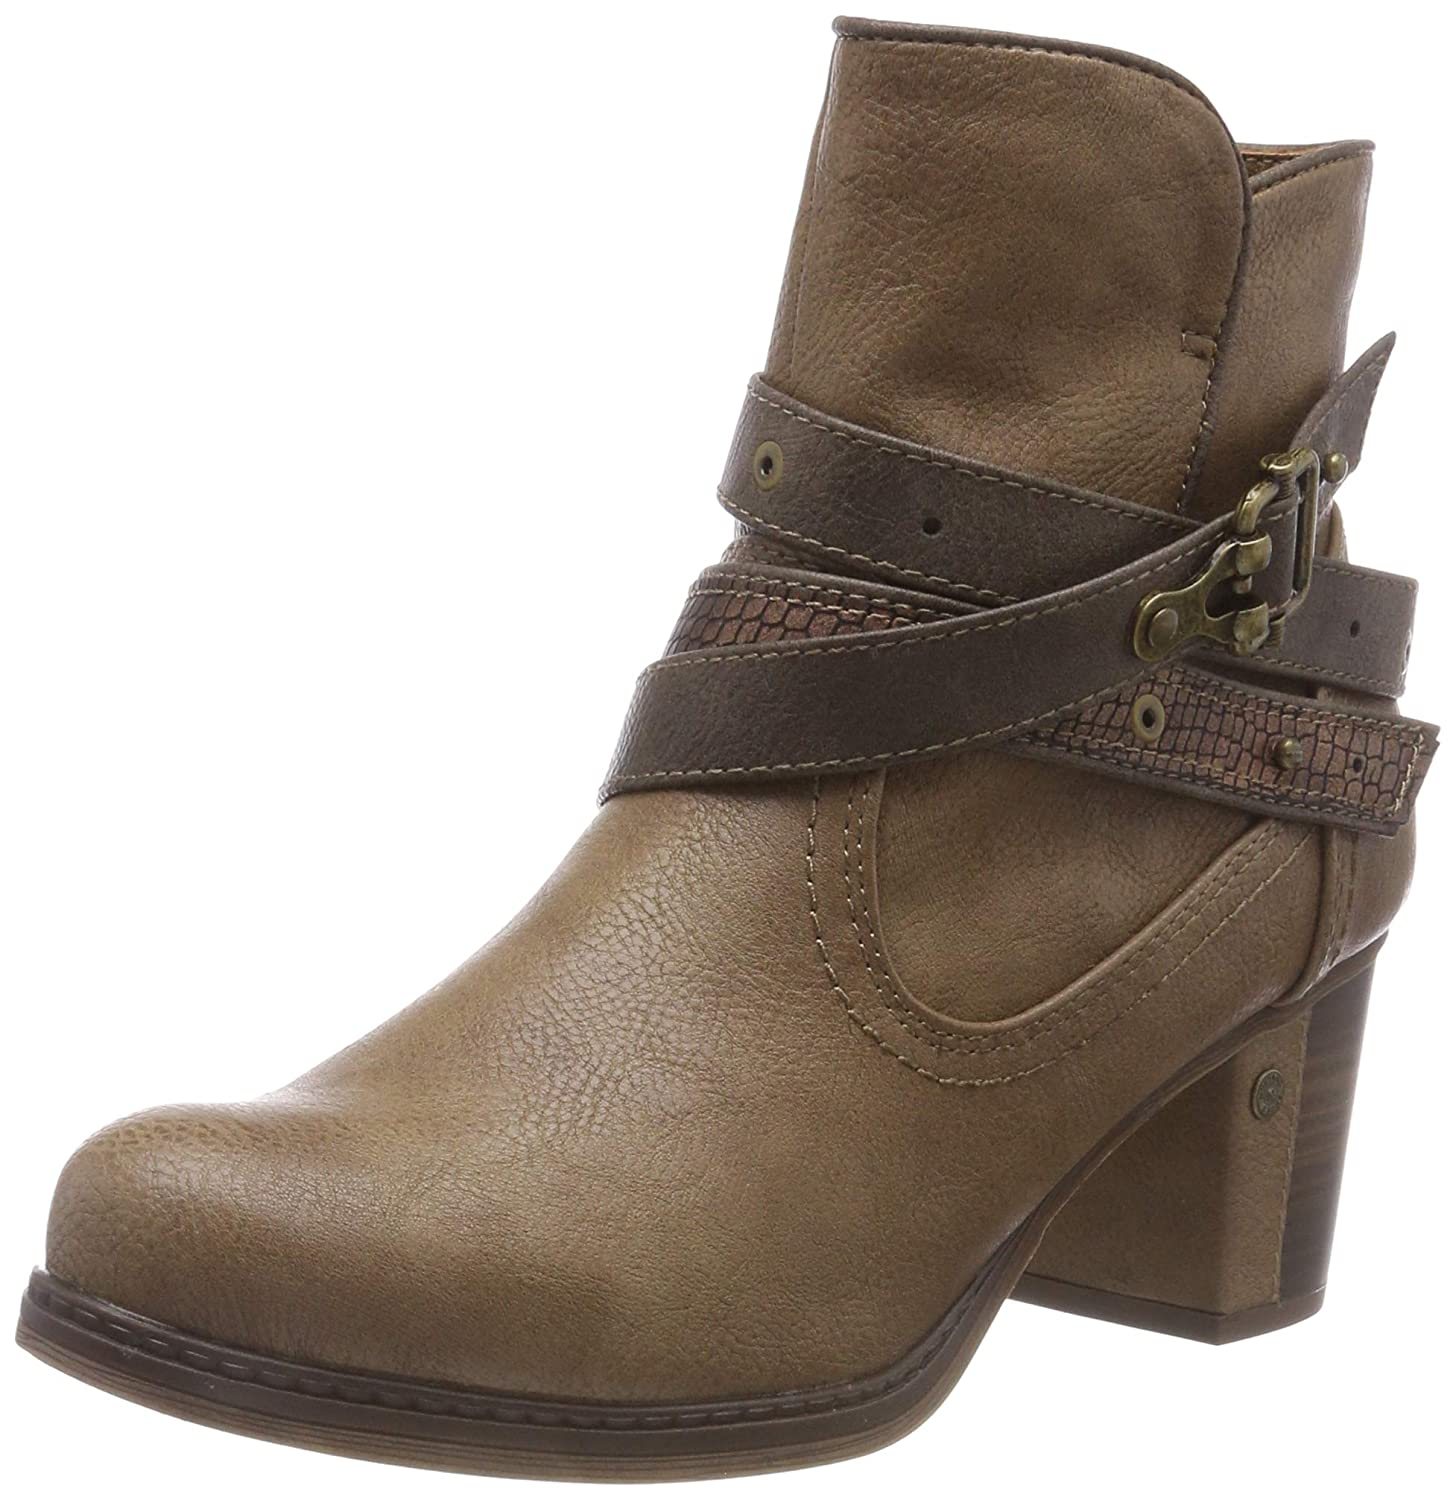 Mustang B07FF4YXSG Stiefelette, 318) Botines Femme Marron 12718 (Taupe 318) 82b2708 - conorscully.space